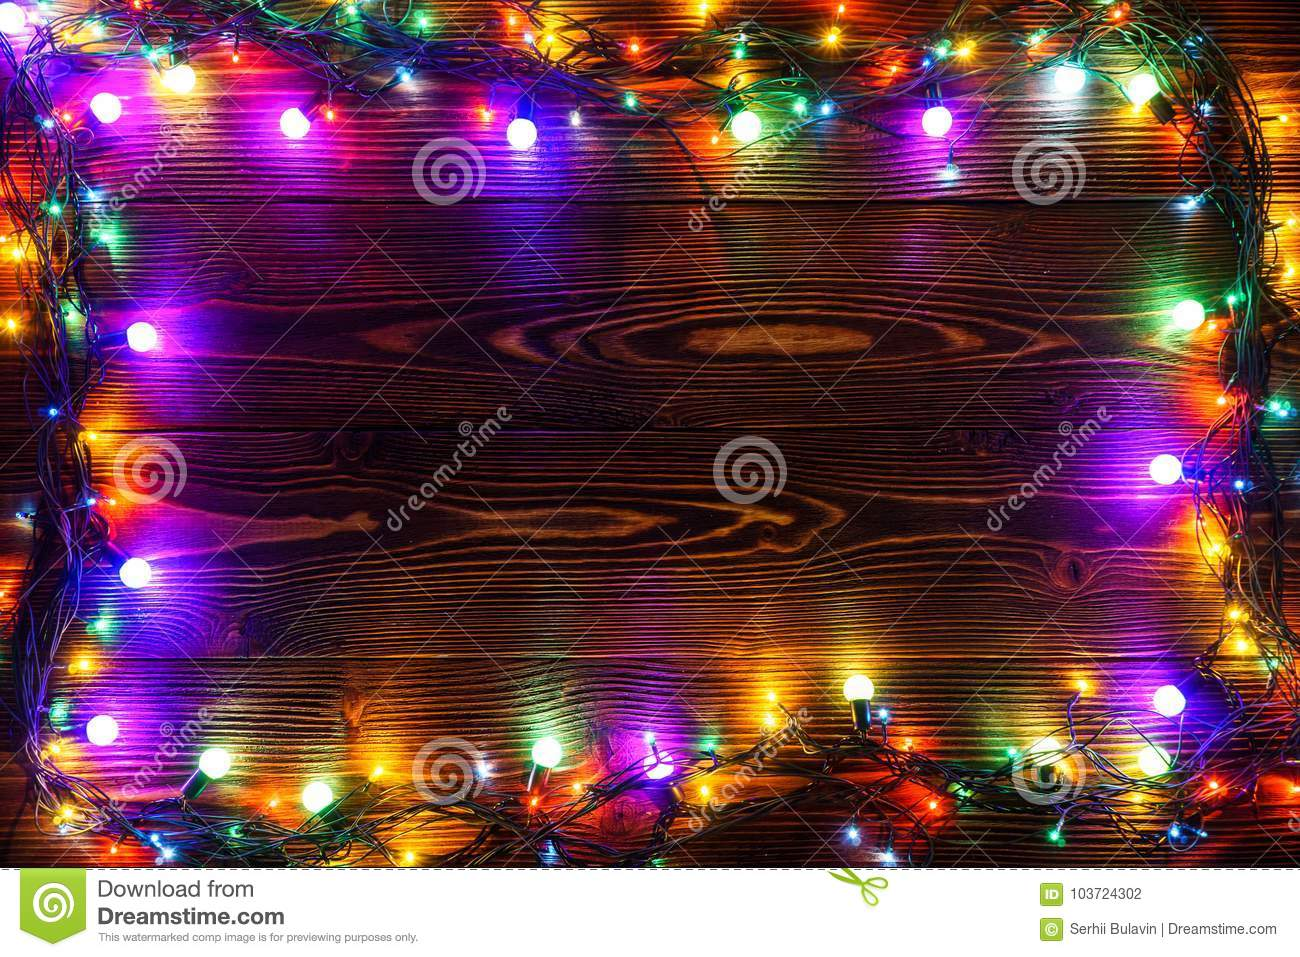 christmas background with lights and free text space christmas lights border glowing colorful christmas lights on wooden background new year